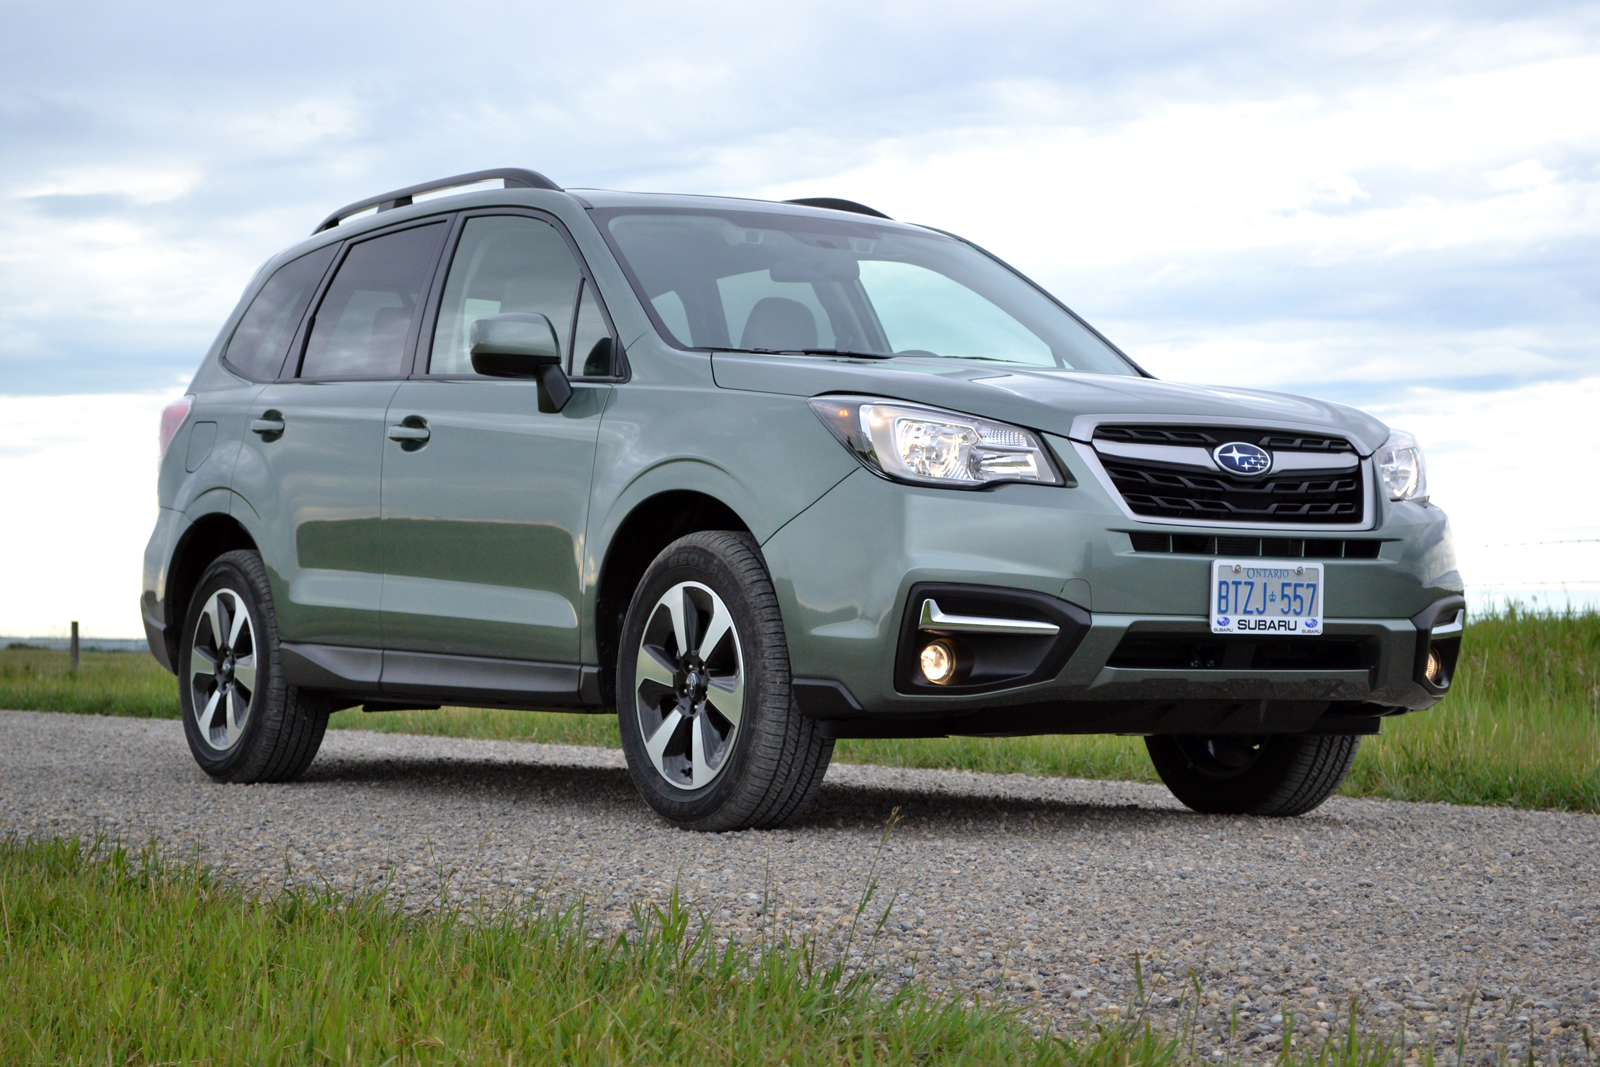 2017 Subaru Forester Limited Price >> 2017 Subaru Forester Limited Review Autoguide Com